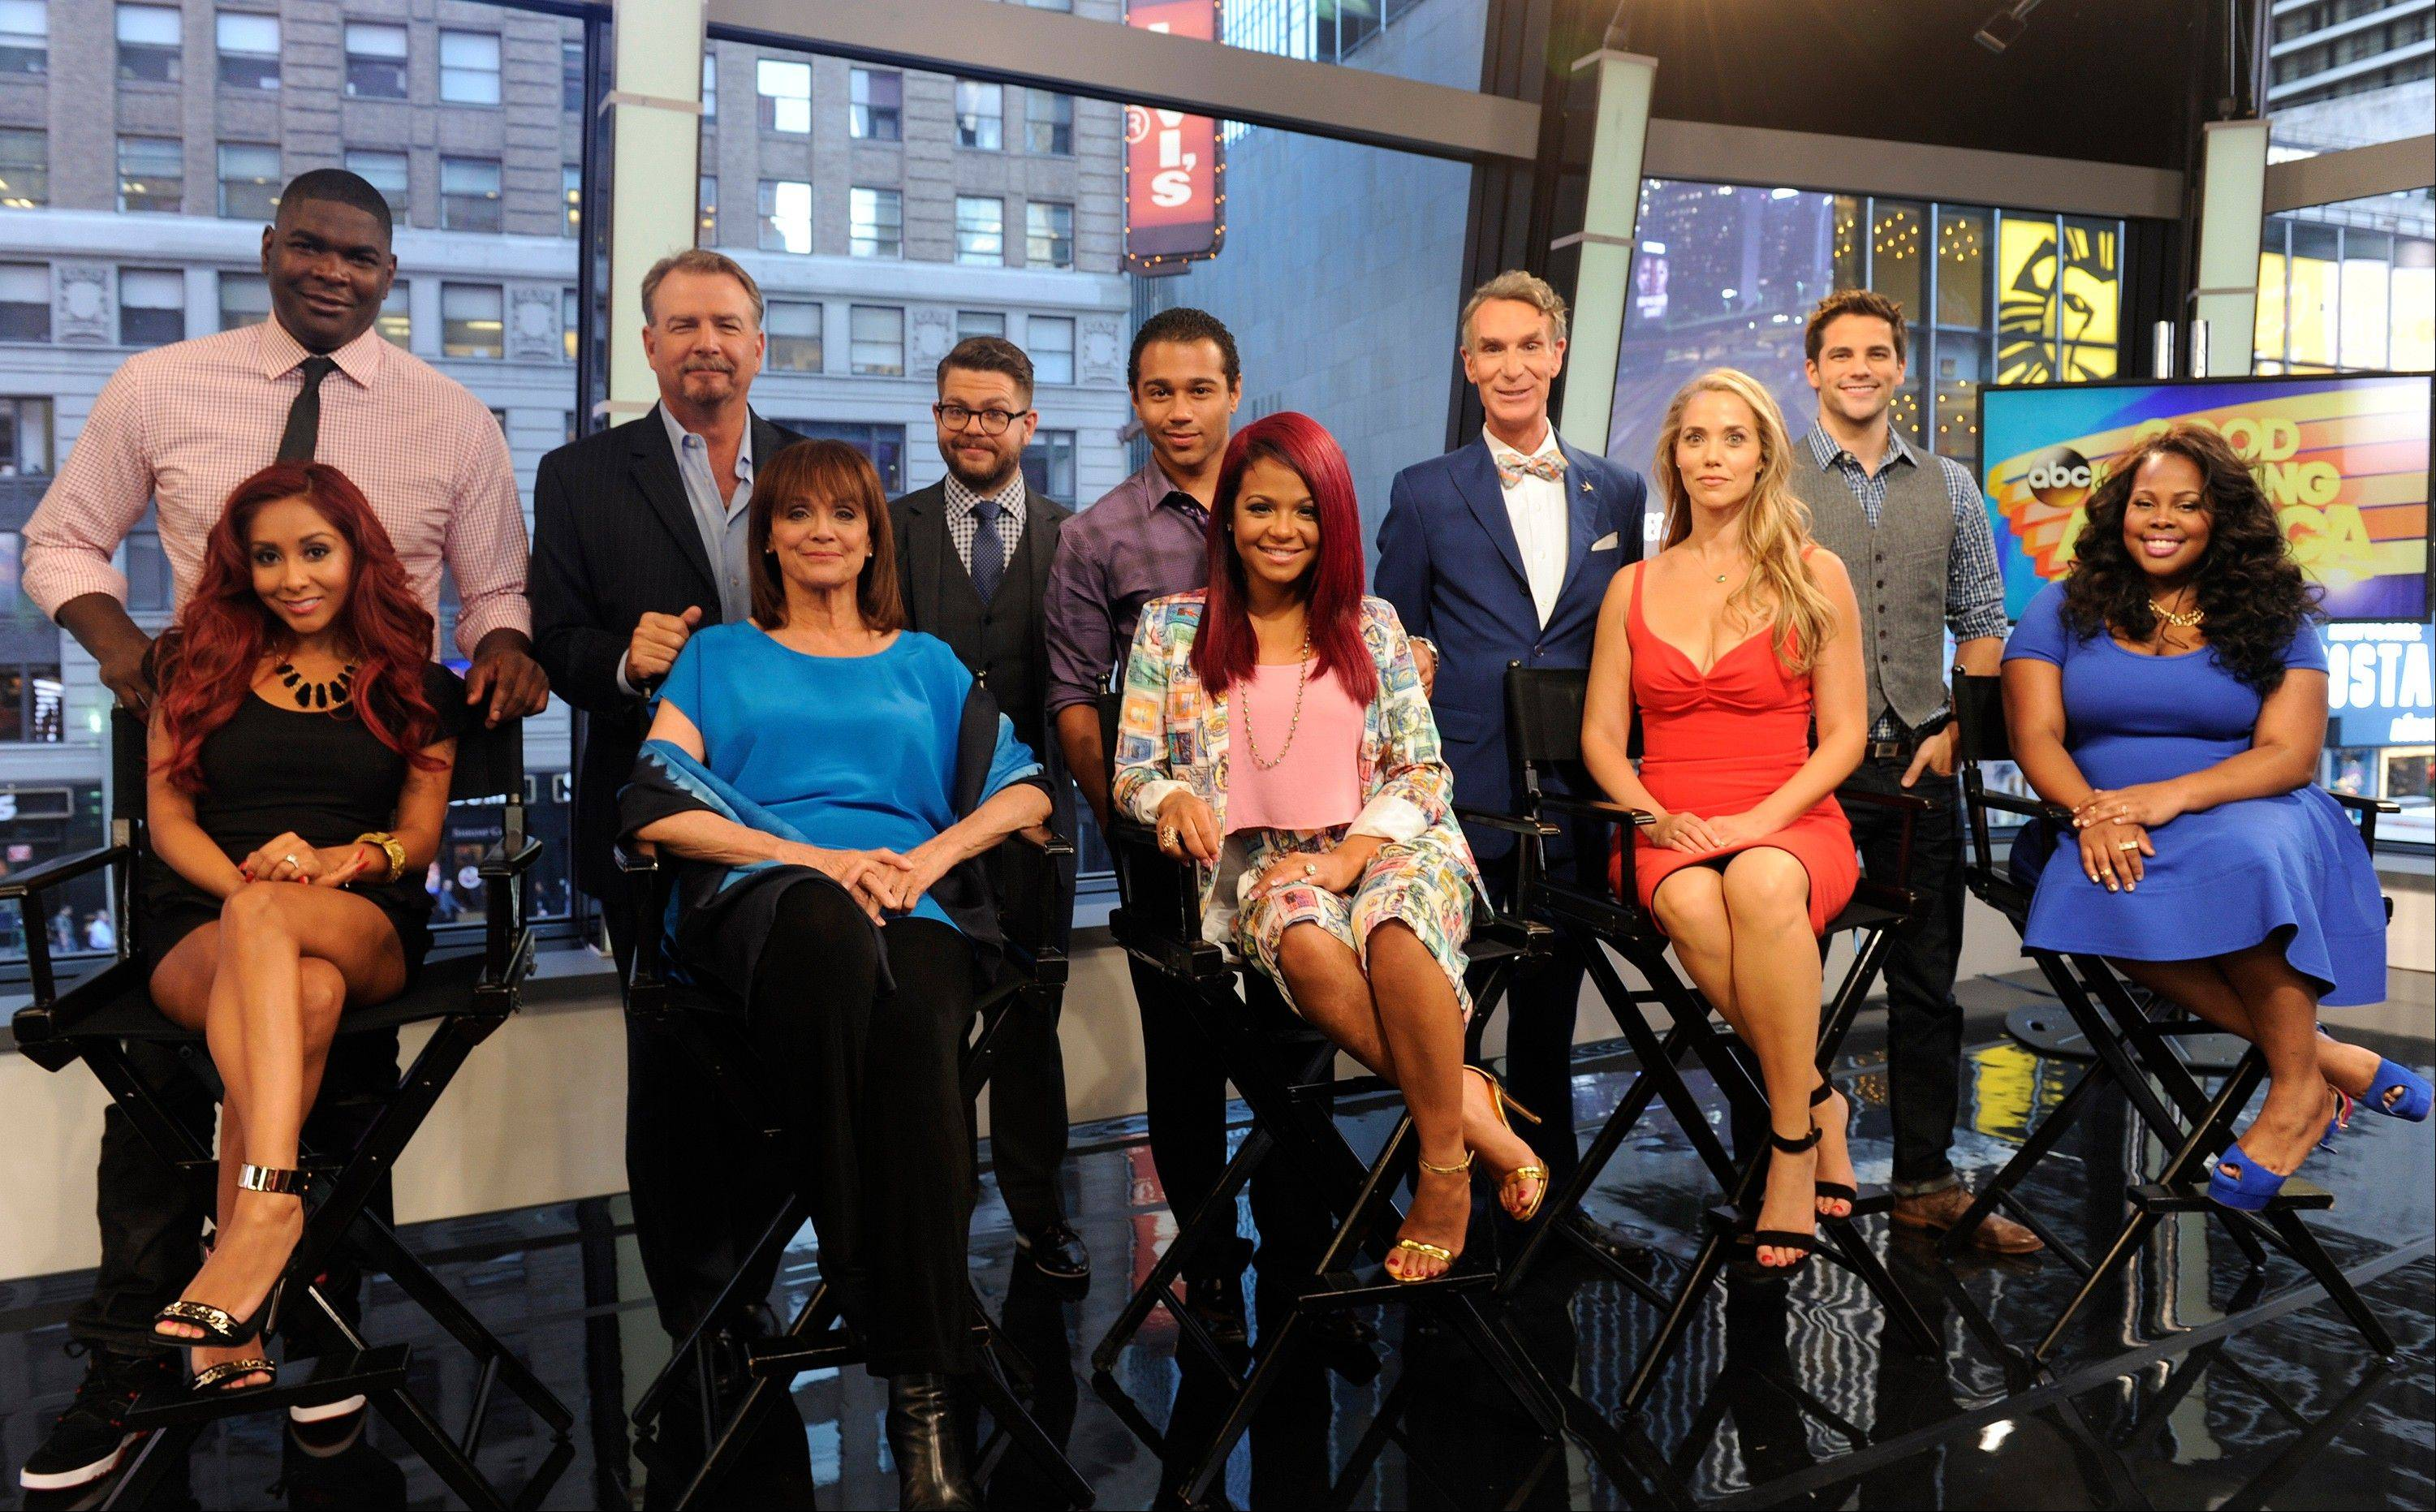 "This image released by ABC shows, standing from left, NFL wide receiver Keyshawn Johnson, comic Bill Engvall, TV personality Jack Osbourne, actor Corbin Bleu, Bill Nye, the ""Science Guy,"" actor Brant Daugherty, and seated from left, TV personality Nicole ""Snooki"" Polizzi, actress Valerie Harper, singer-actress Christina Milian, actress Elizabeth Berkley and actress Amber Riley on ""Good Morning America,"" Wednesday, Sept. 4, 2013 in New York. These 11 celebrities, along with actress Leah Remini, will be the next celebrity contestants on the dance competition series ""Dancing with the Stars,"" premiering Sept. 16."